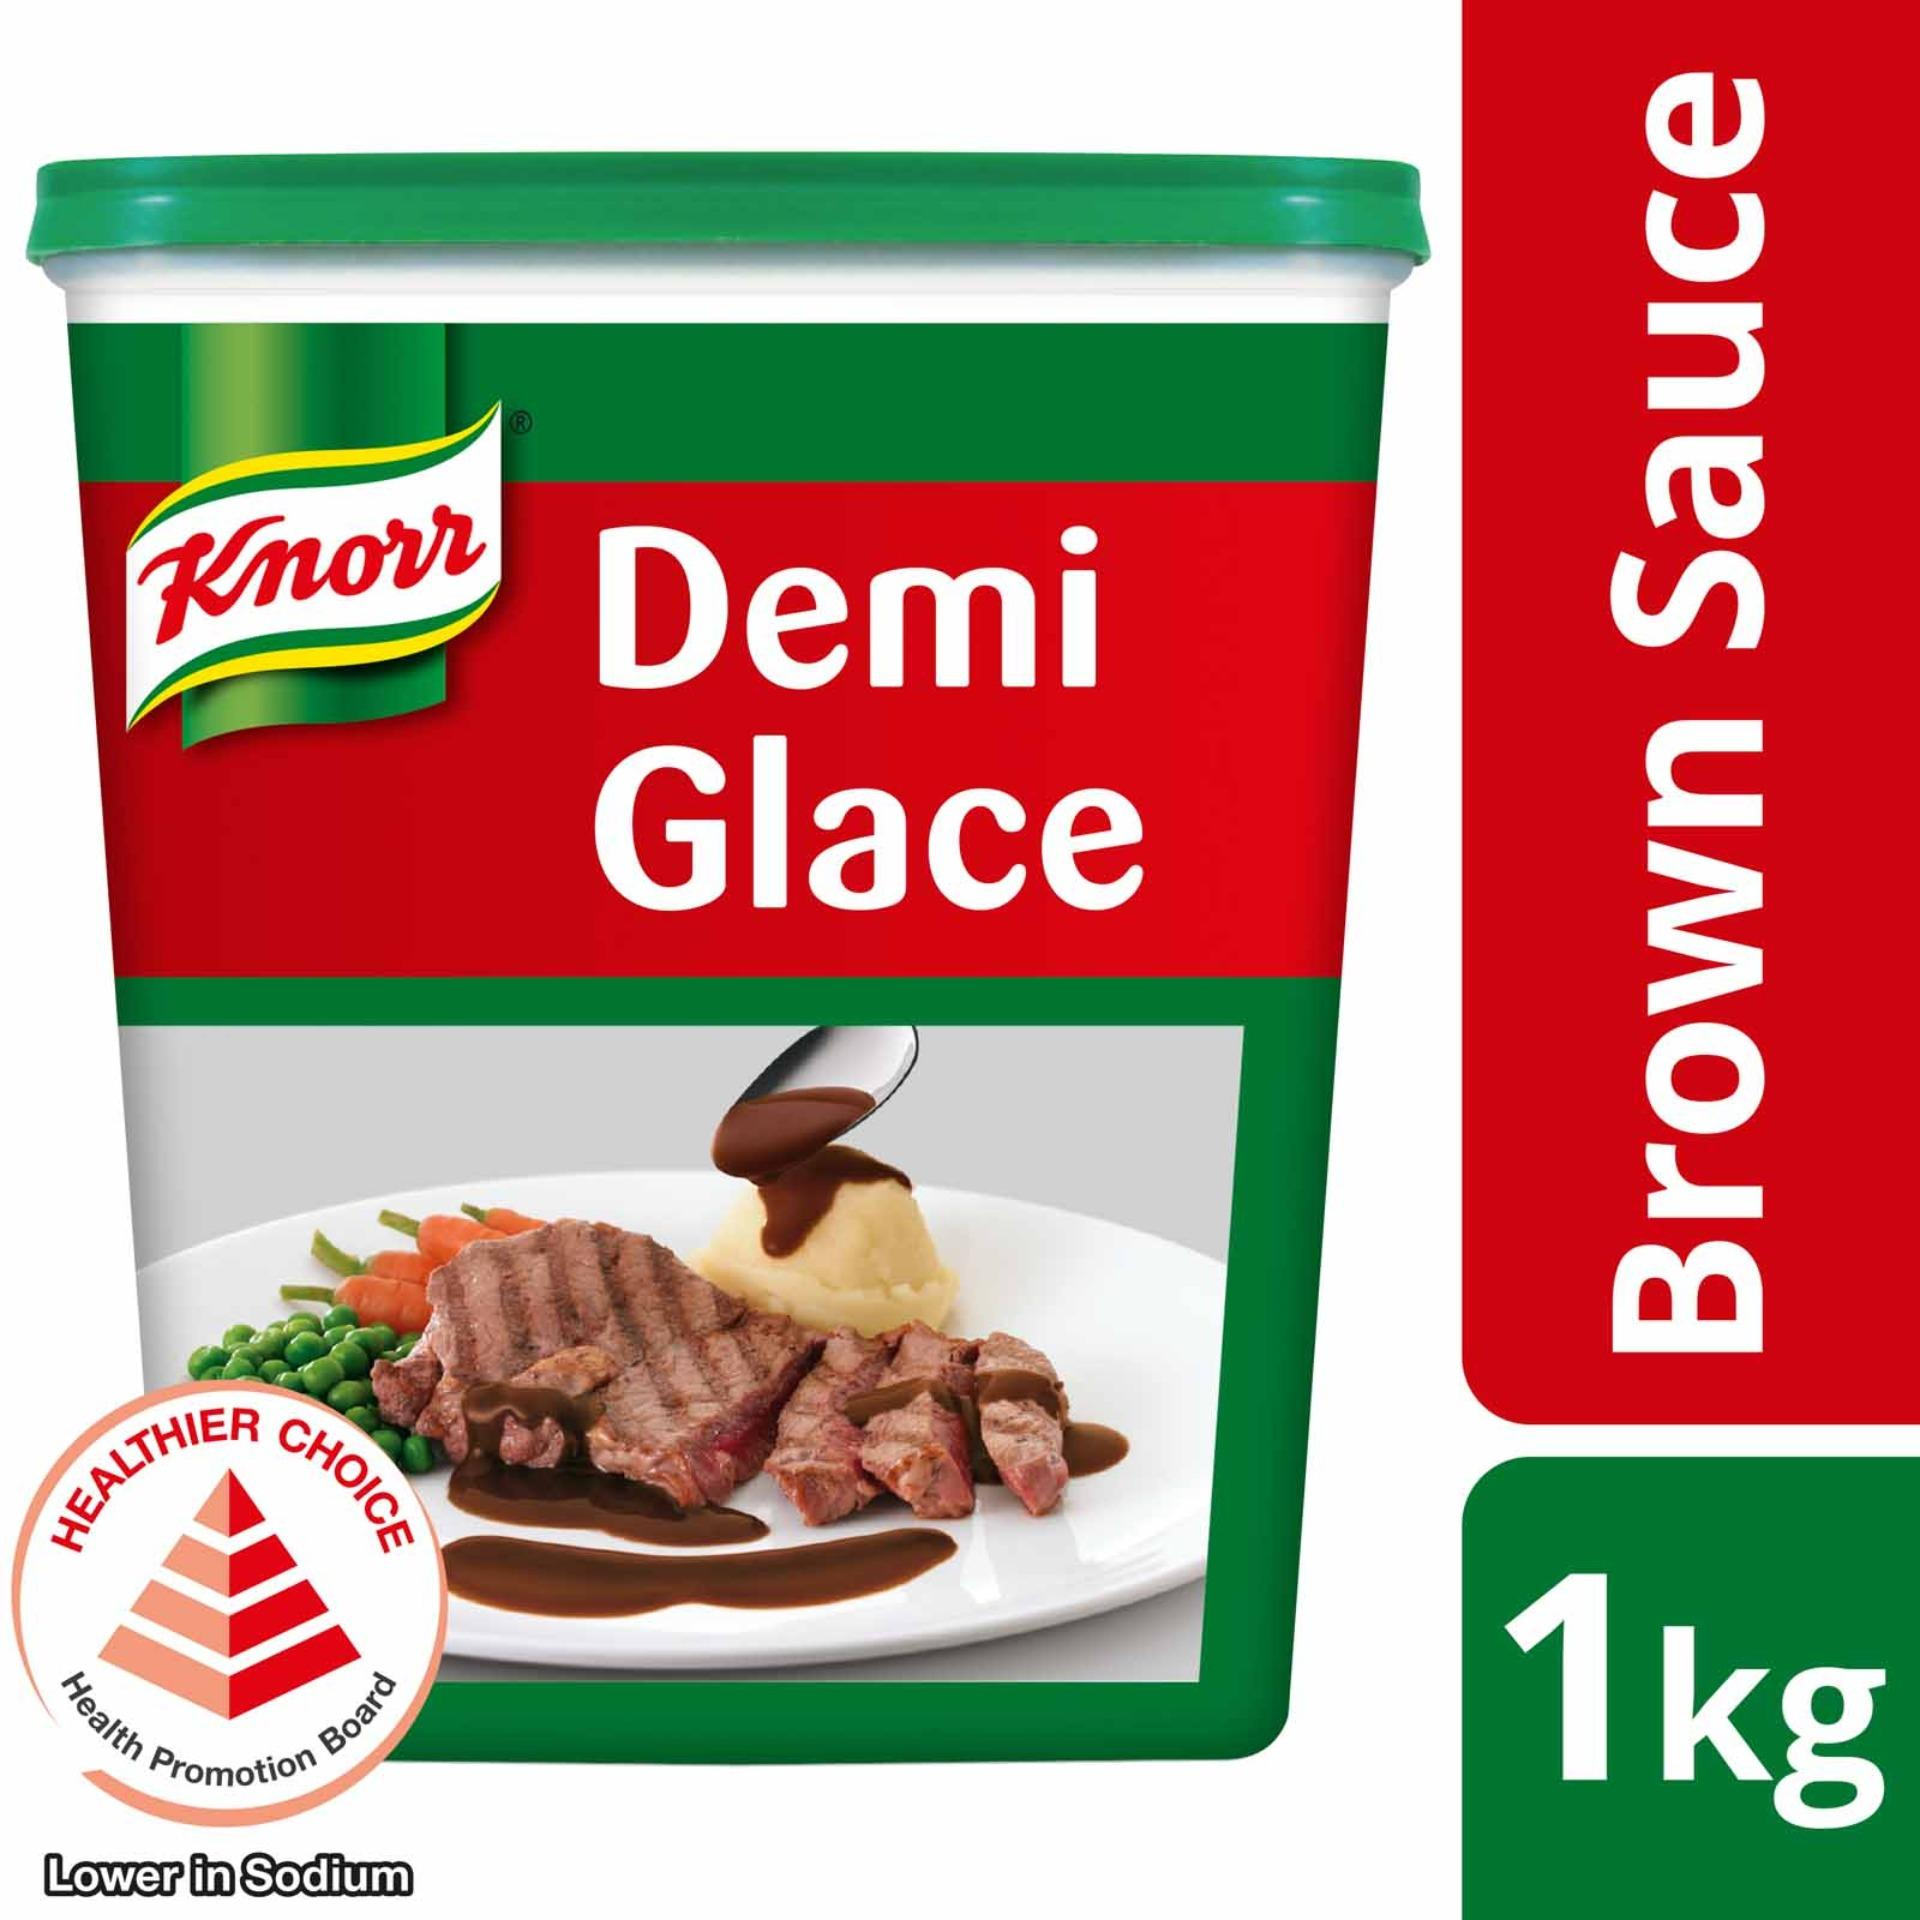 Low Price Demi Glace Sauce Knorr 1Kg